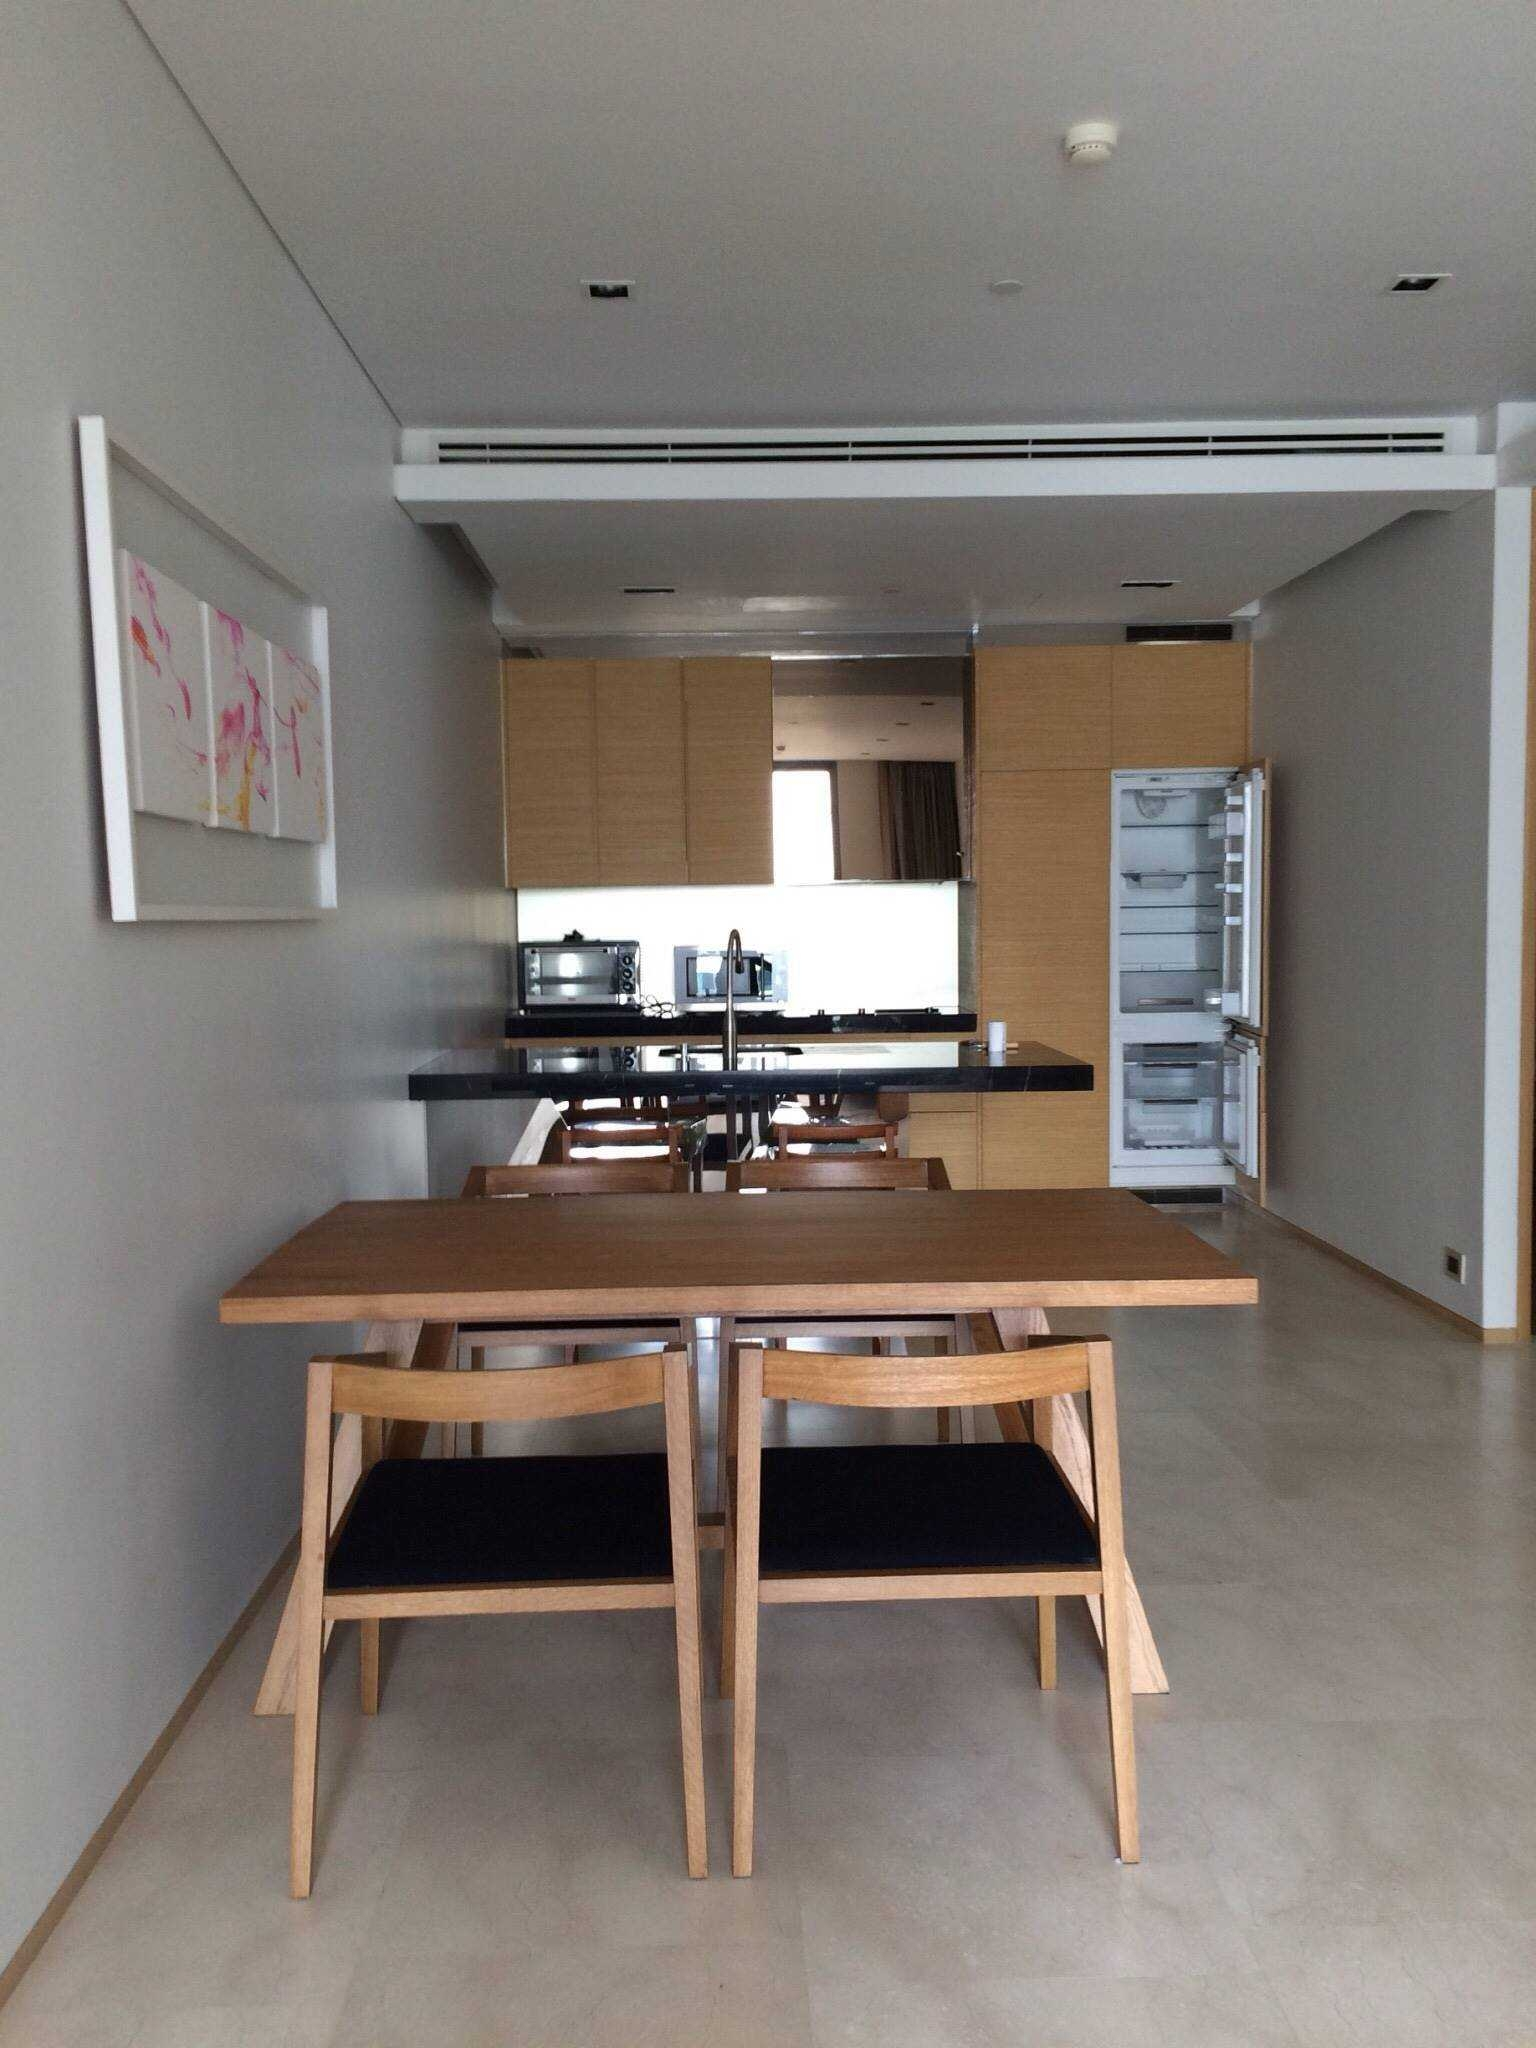 LTH3812 – Saladaeng One FOR RENT 2 beds 2 baths size 103.73 Sq.M. Nearby MRT Lumphini station ONLY 80k/Month